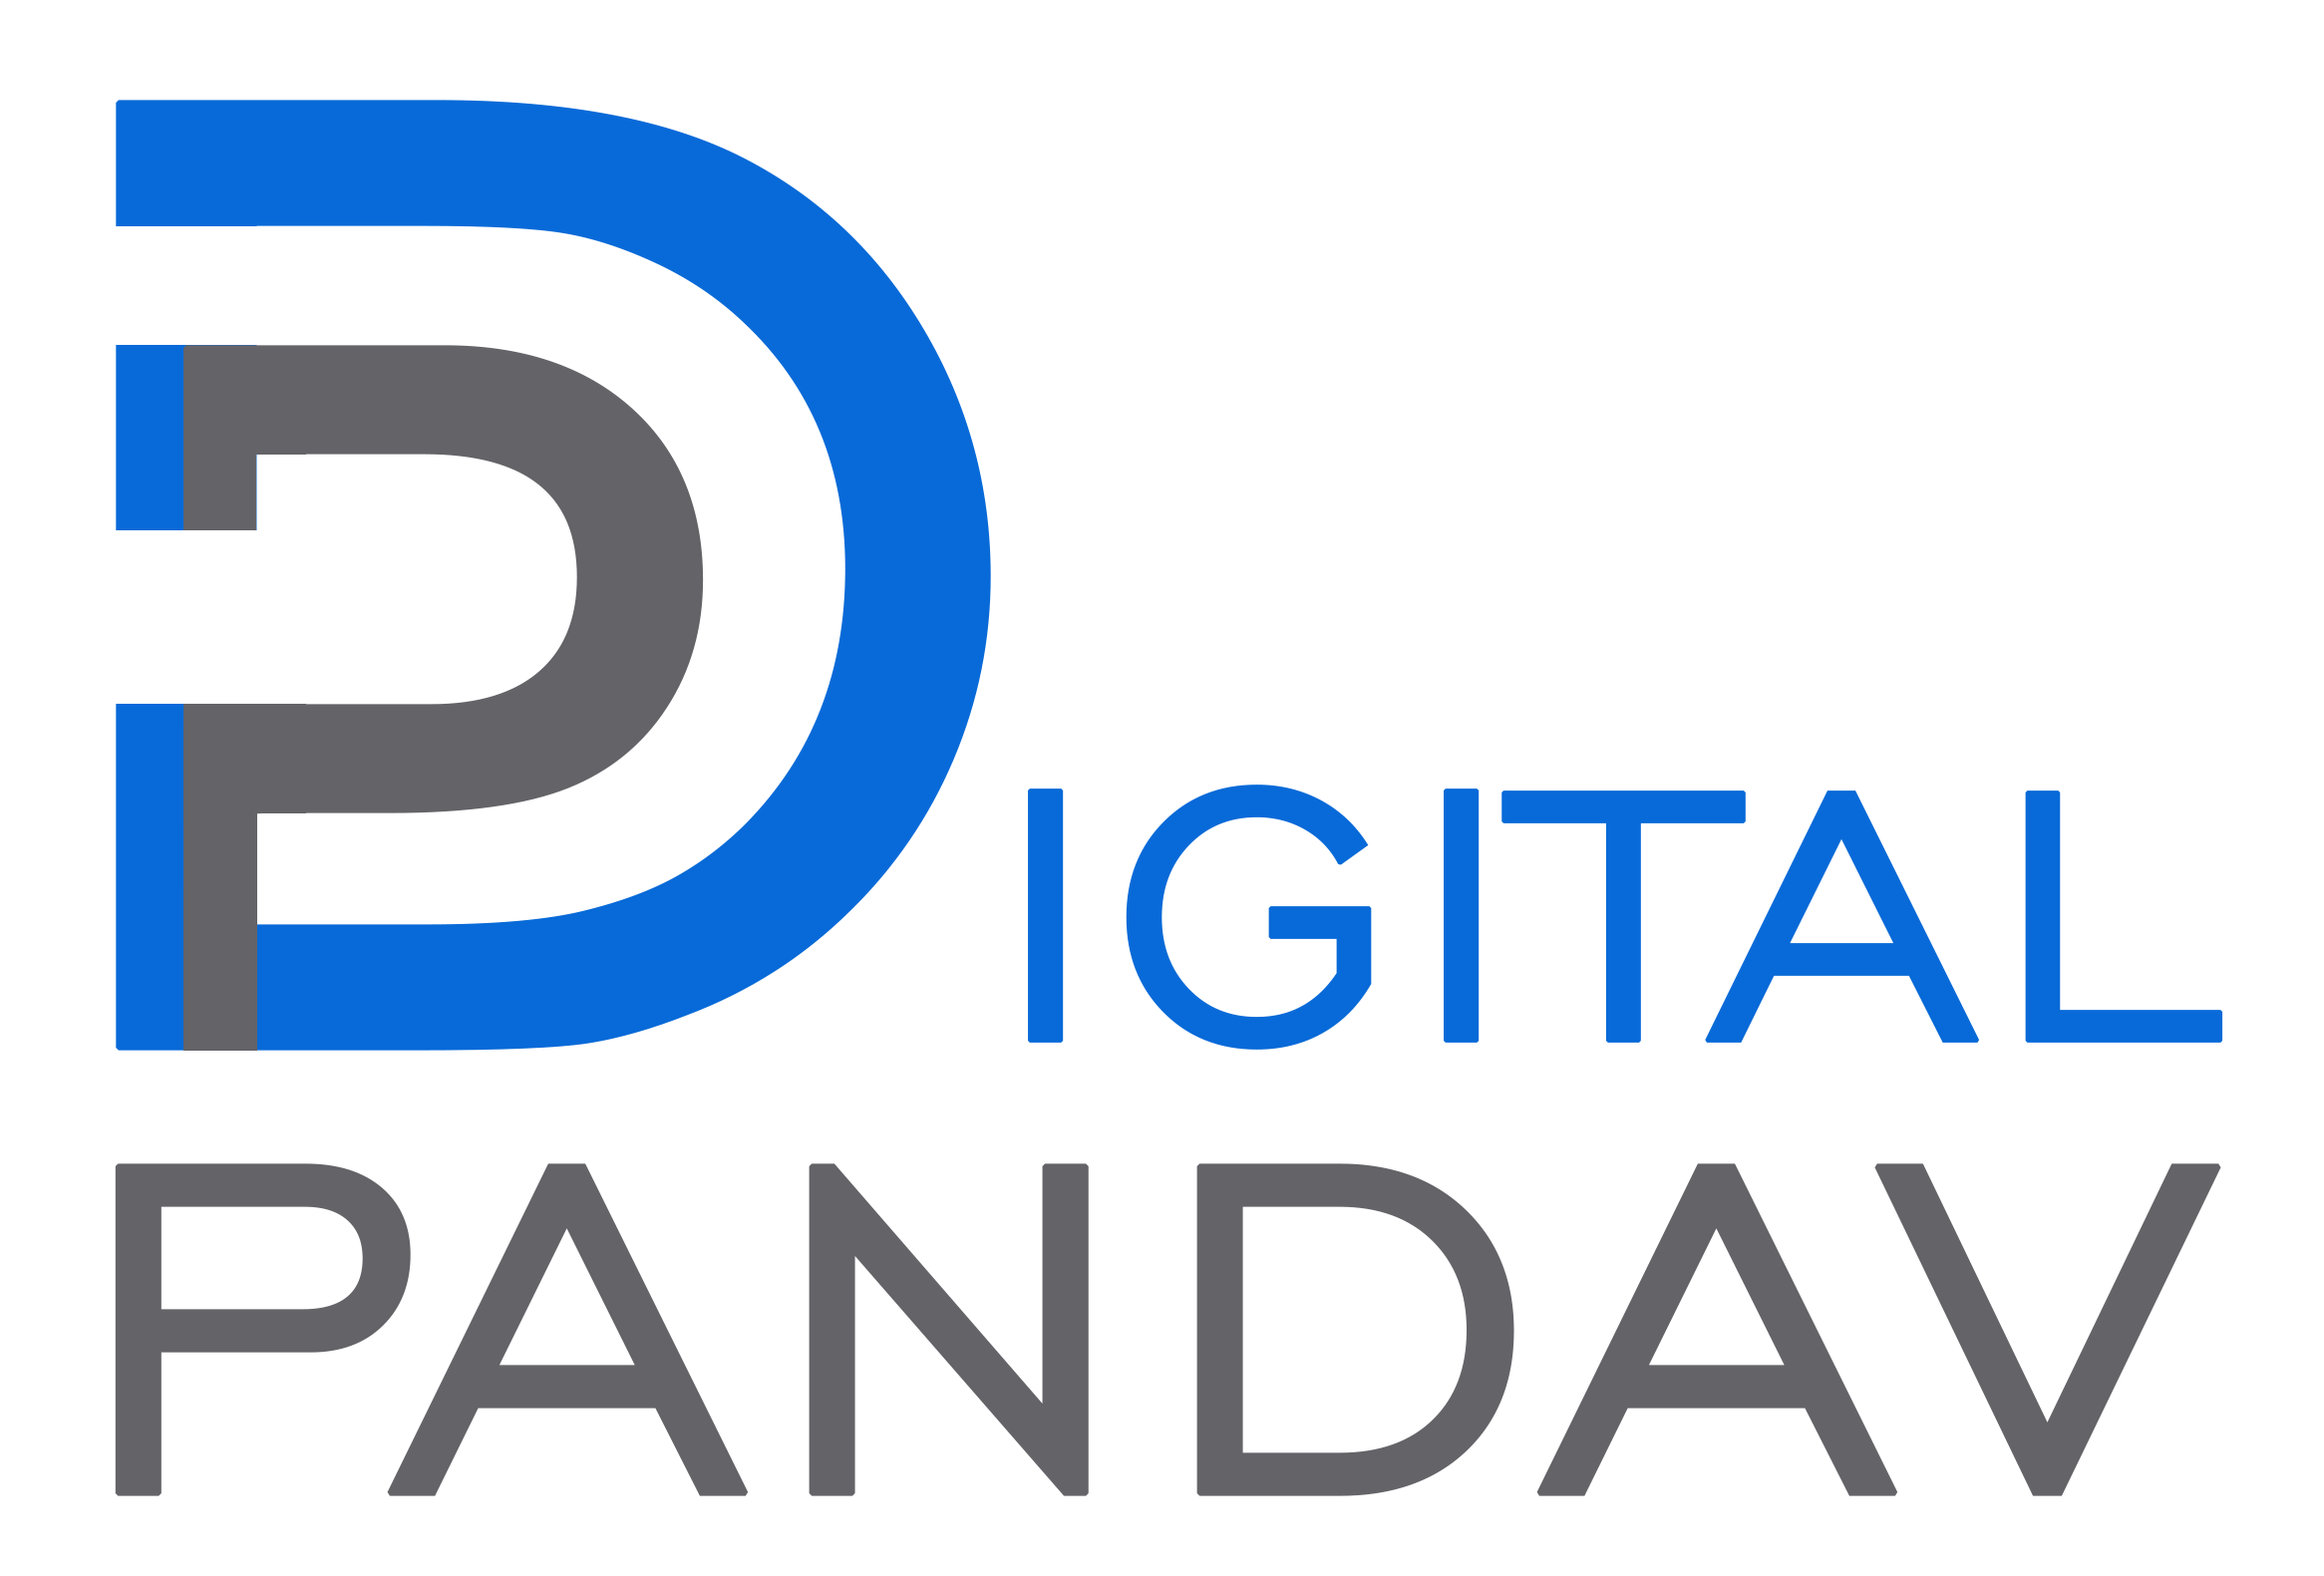 Digital Pandav